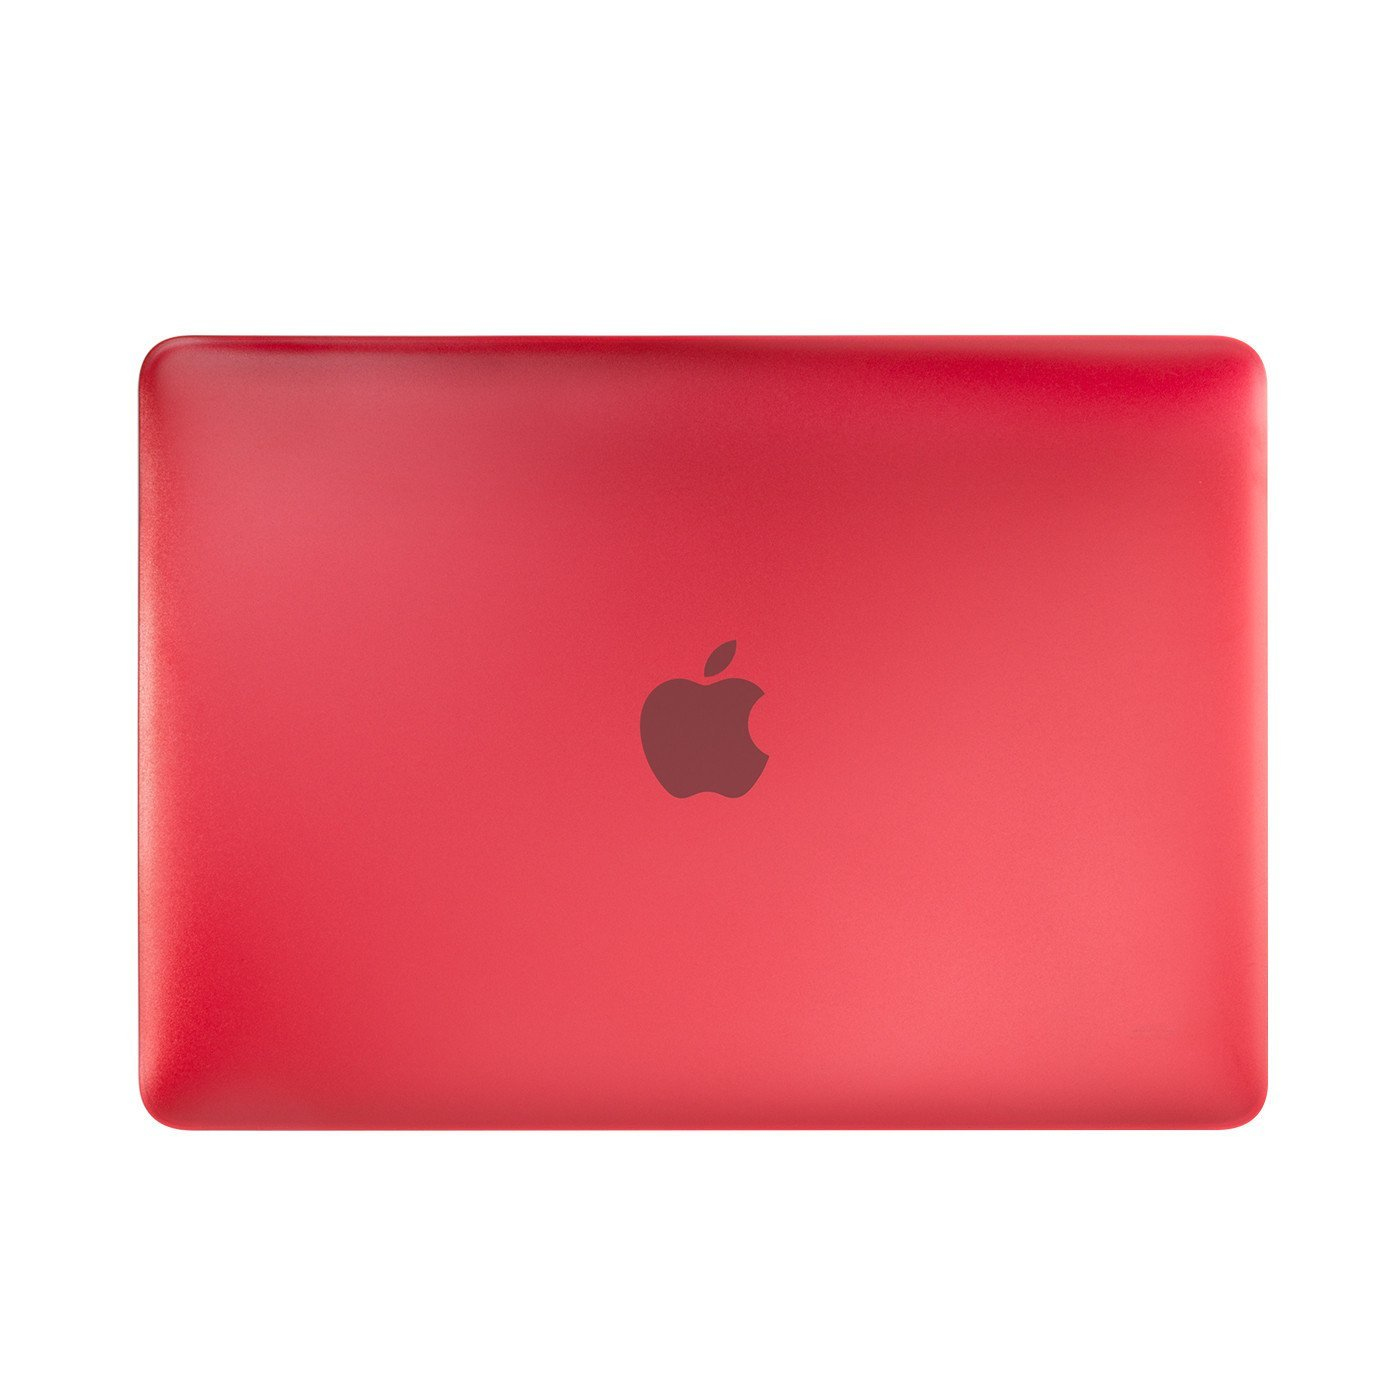 JCPal Protective Case Matte Cherry Red for MacBook Pro Retina 13-Inch